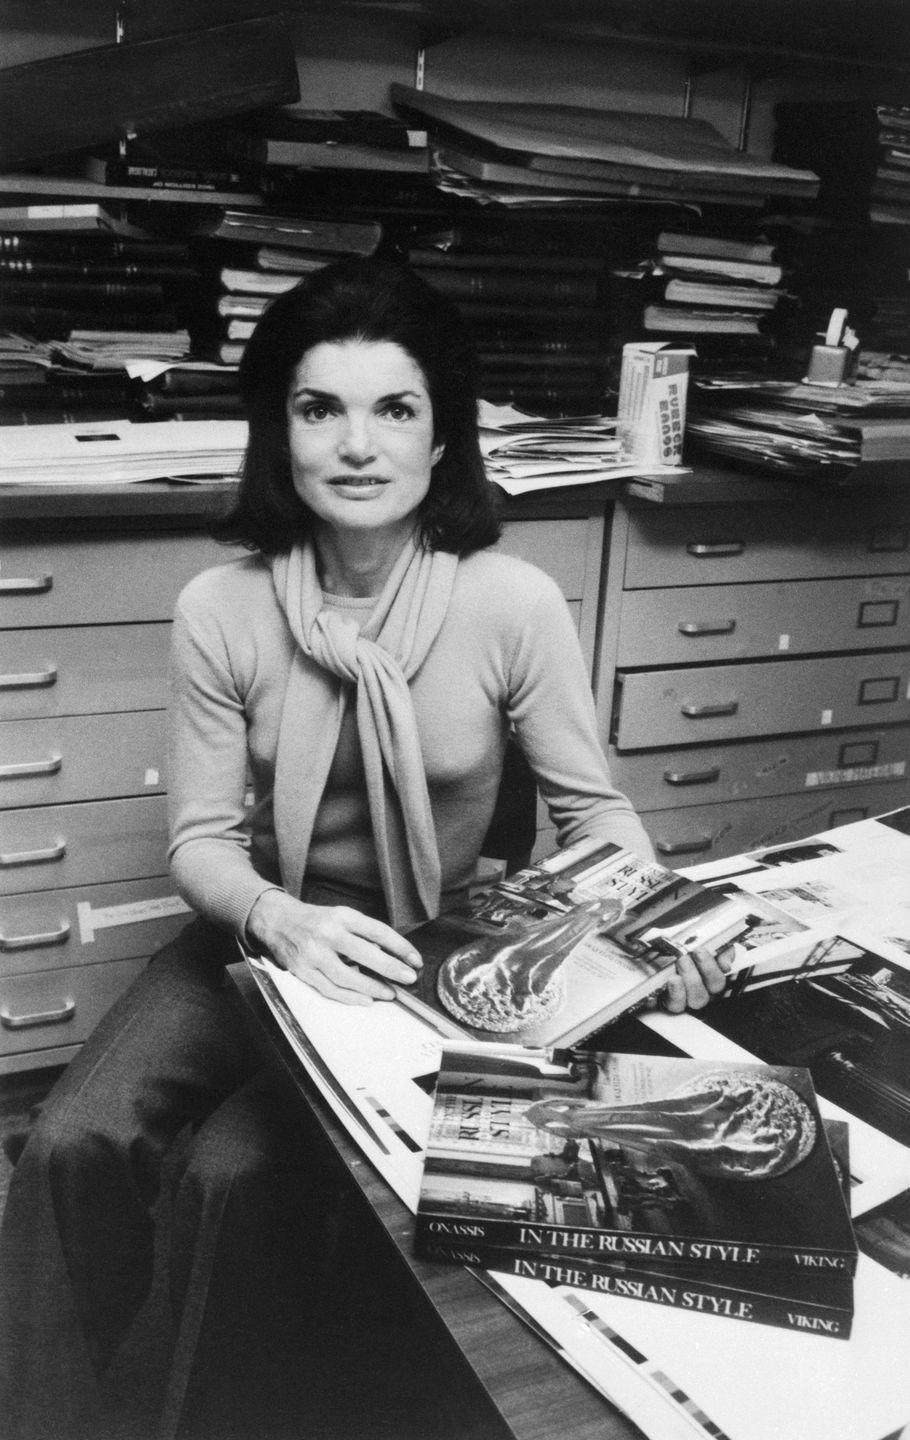 <p>Here, Jackie is photographed in her office at Viking Press, where she wrote and edited her first book <em>In the Russian Style</em>. She looks the part of a New York editor with a matching sweater set and flared tweed pants. <br></p>